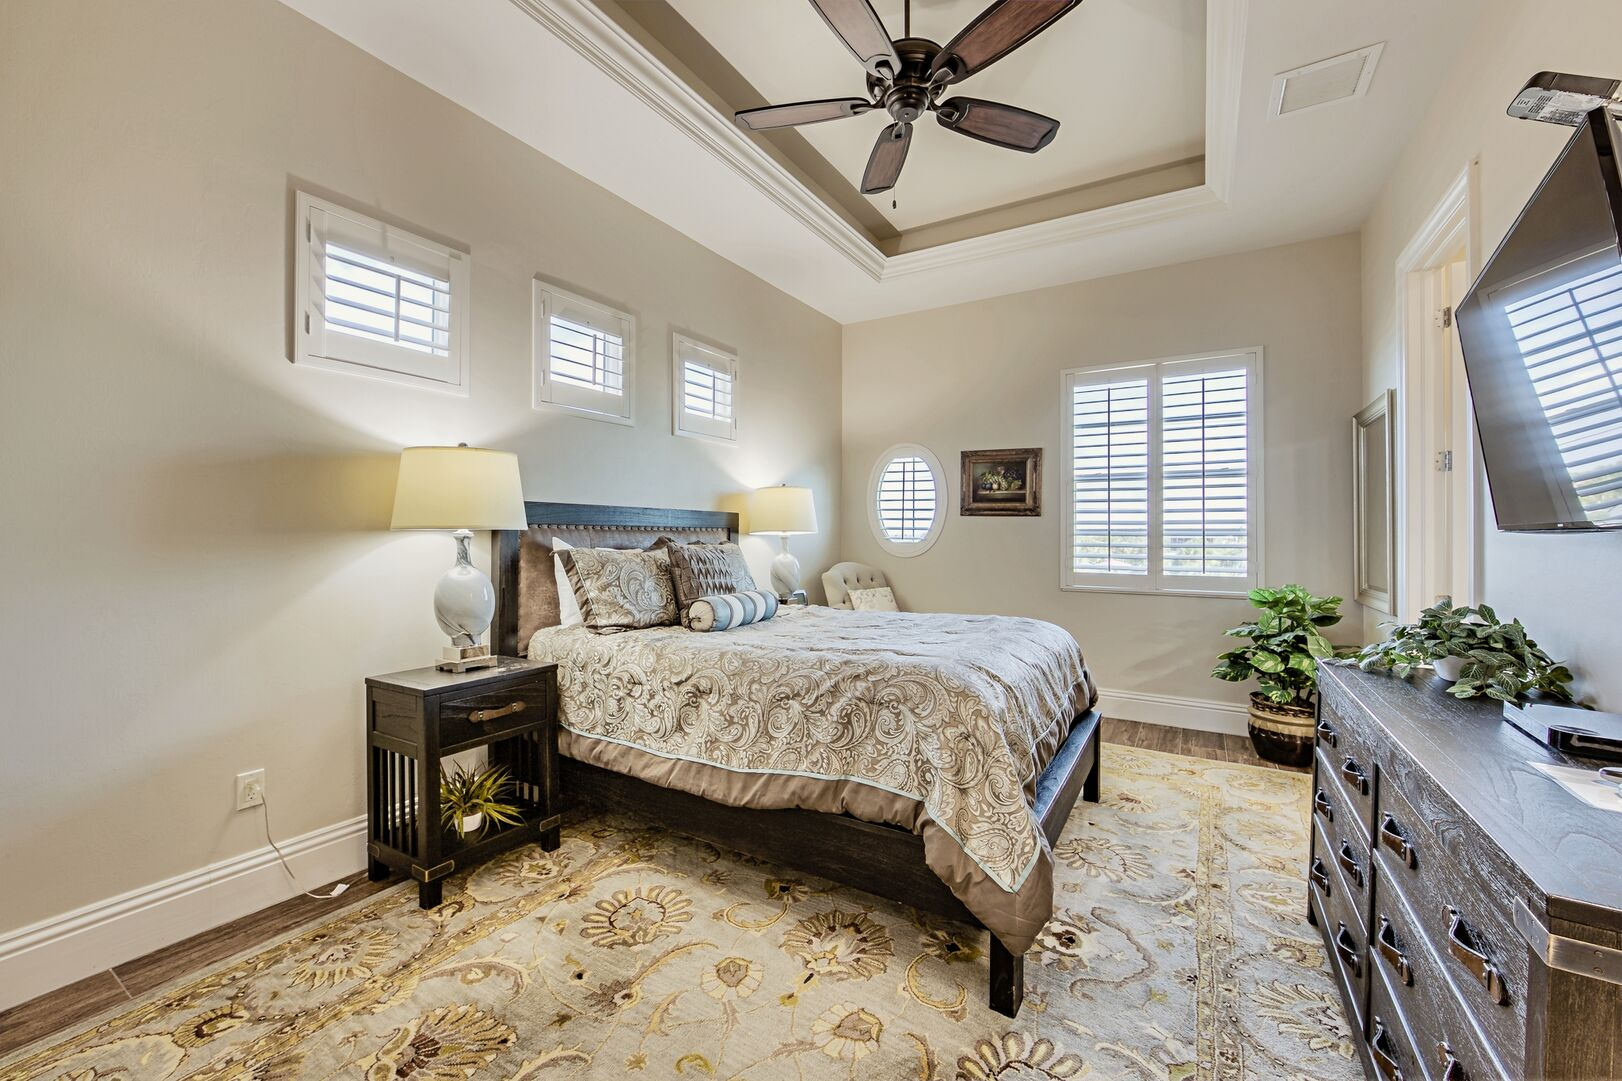 Drawer Dresser, TV, Large Bed, Ceiling Fan, Nightstands, and Table Lamps.